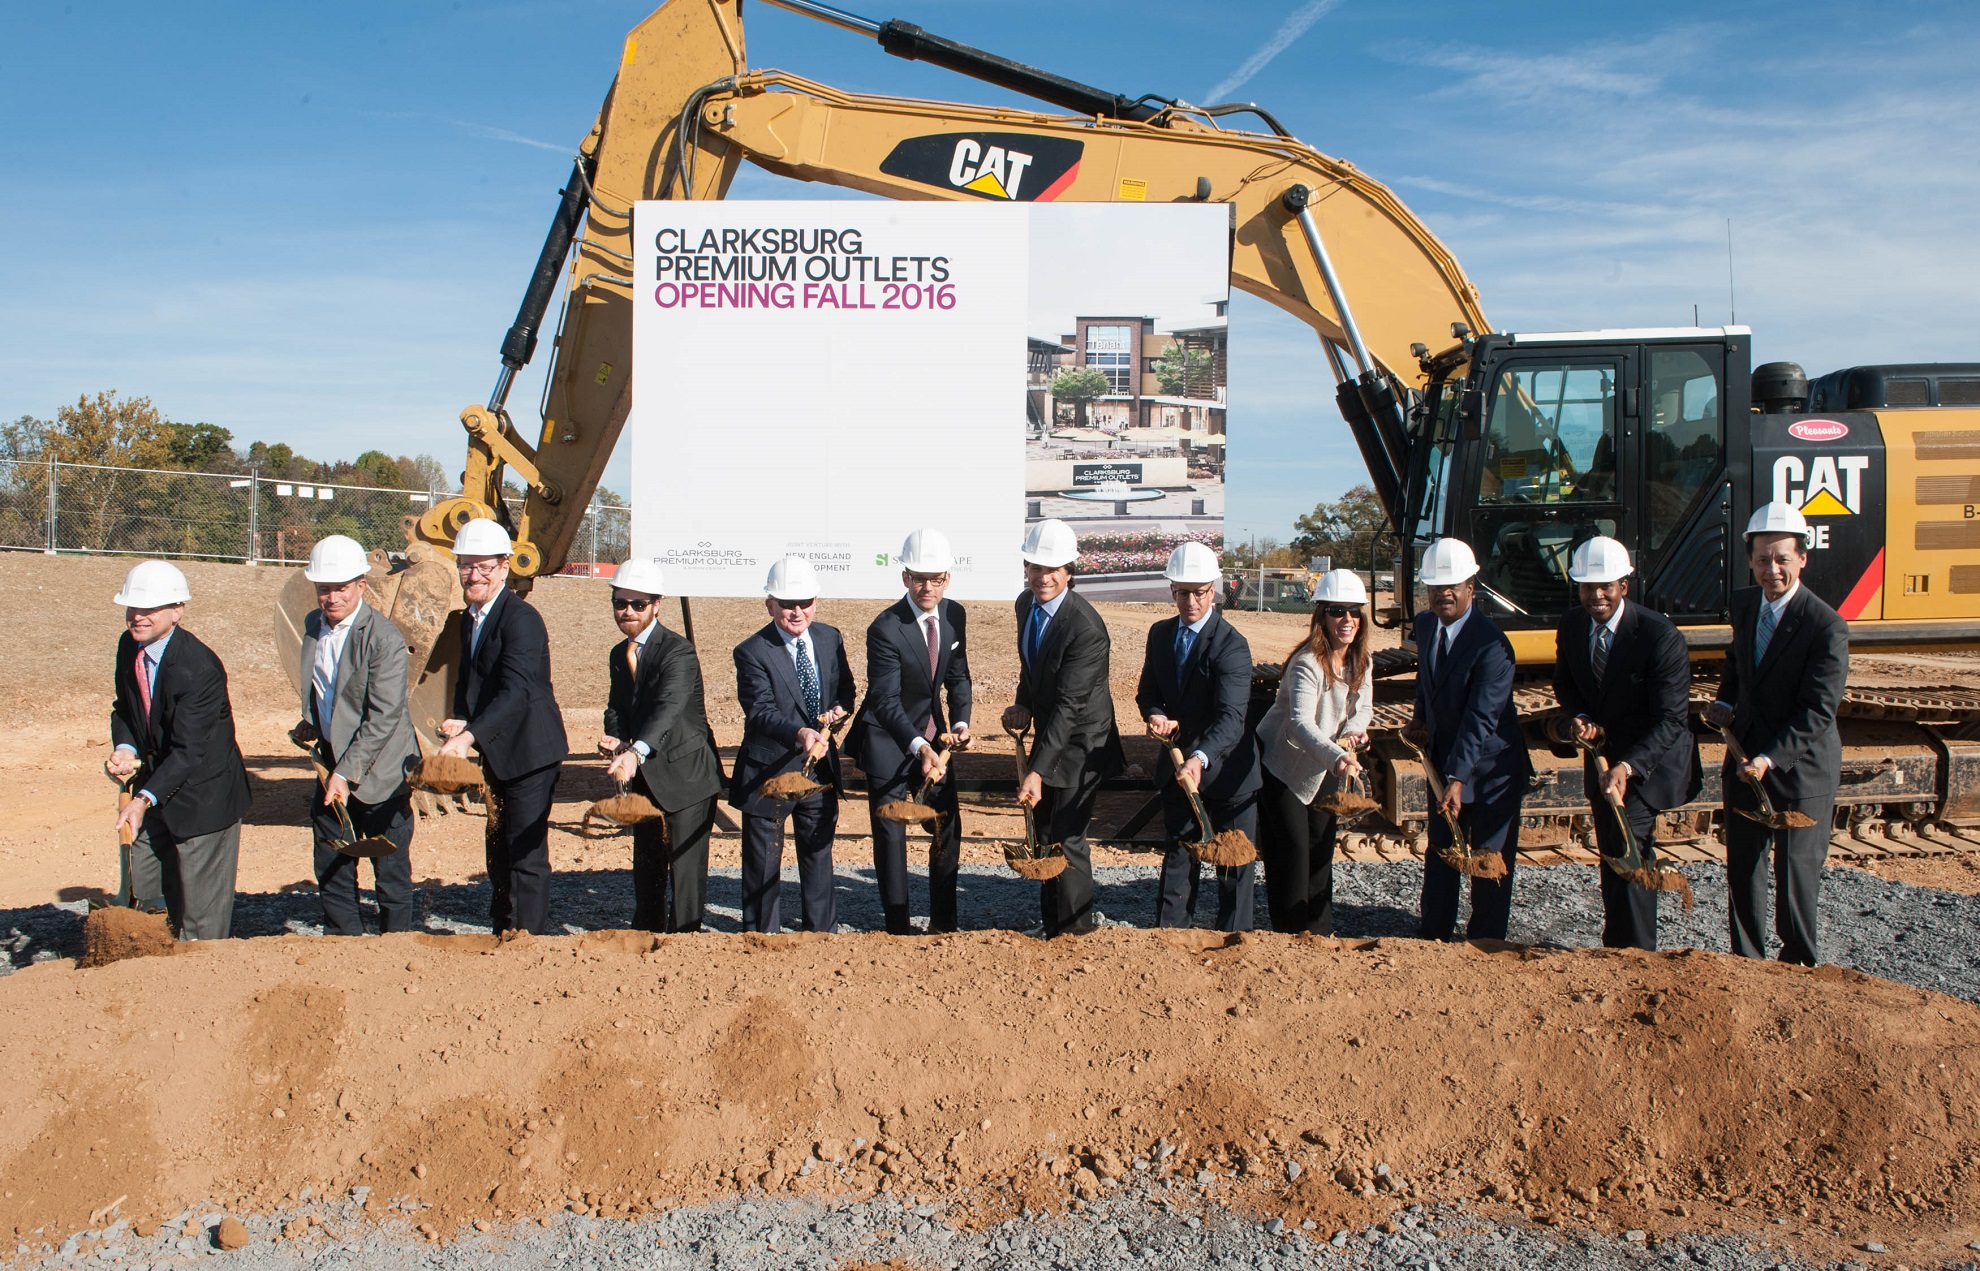 Groundbreaking for Clarksburg Premium Outlets